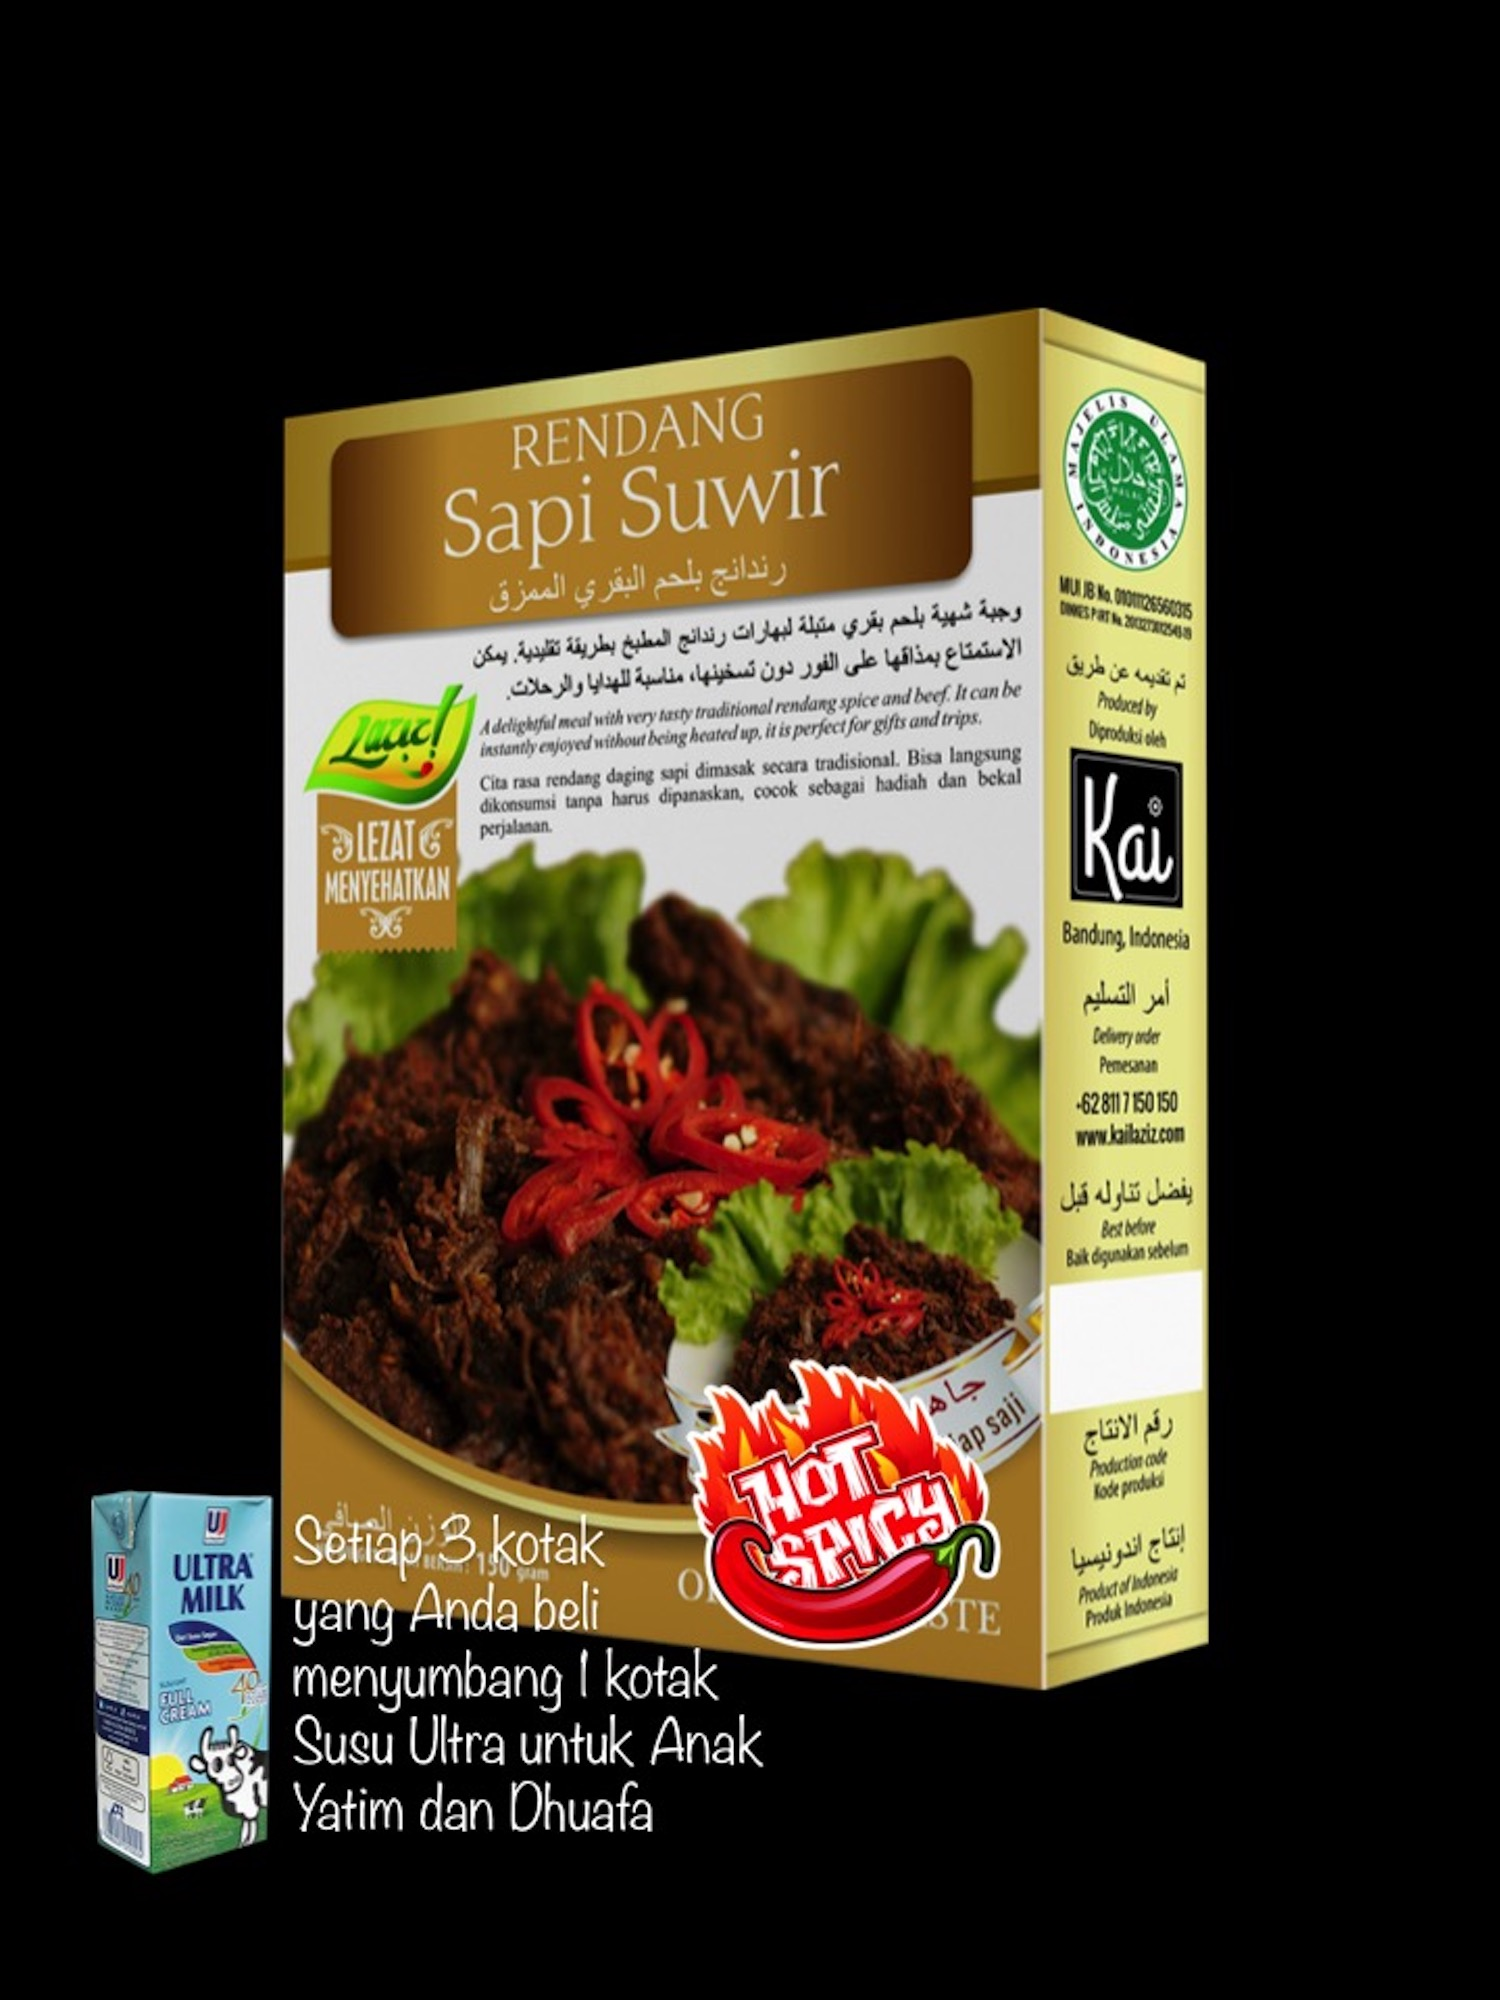 RENDANG SAPI SUWIR HOT SPICY KAI FOOD 150GR